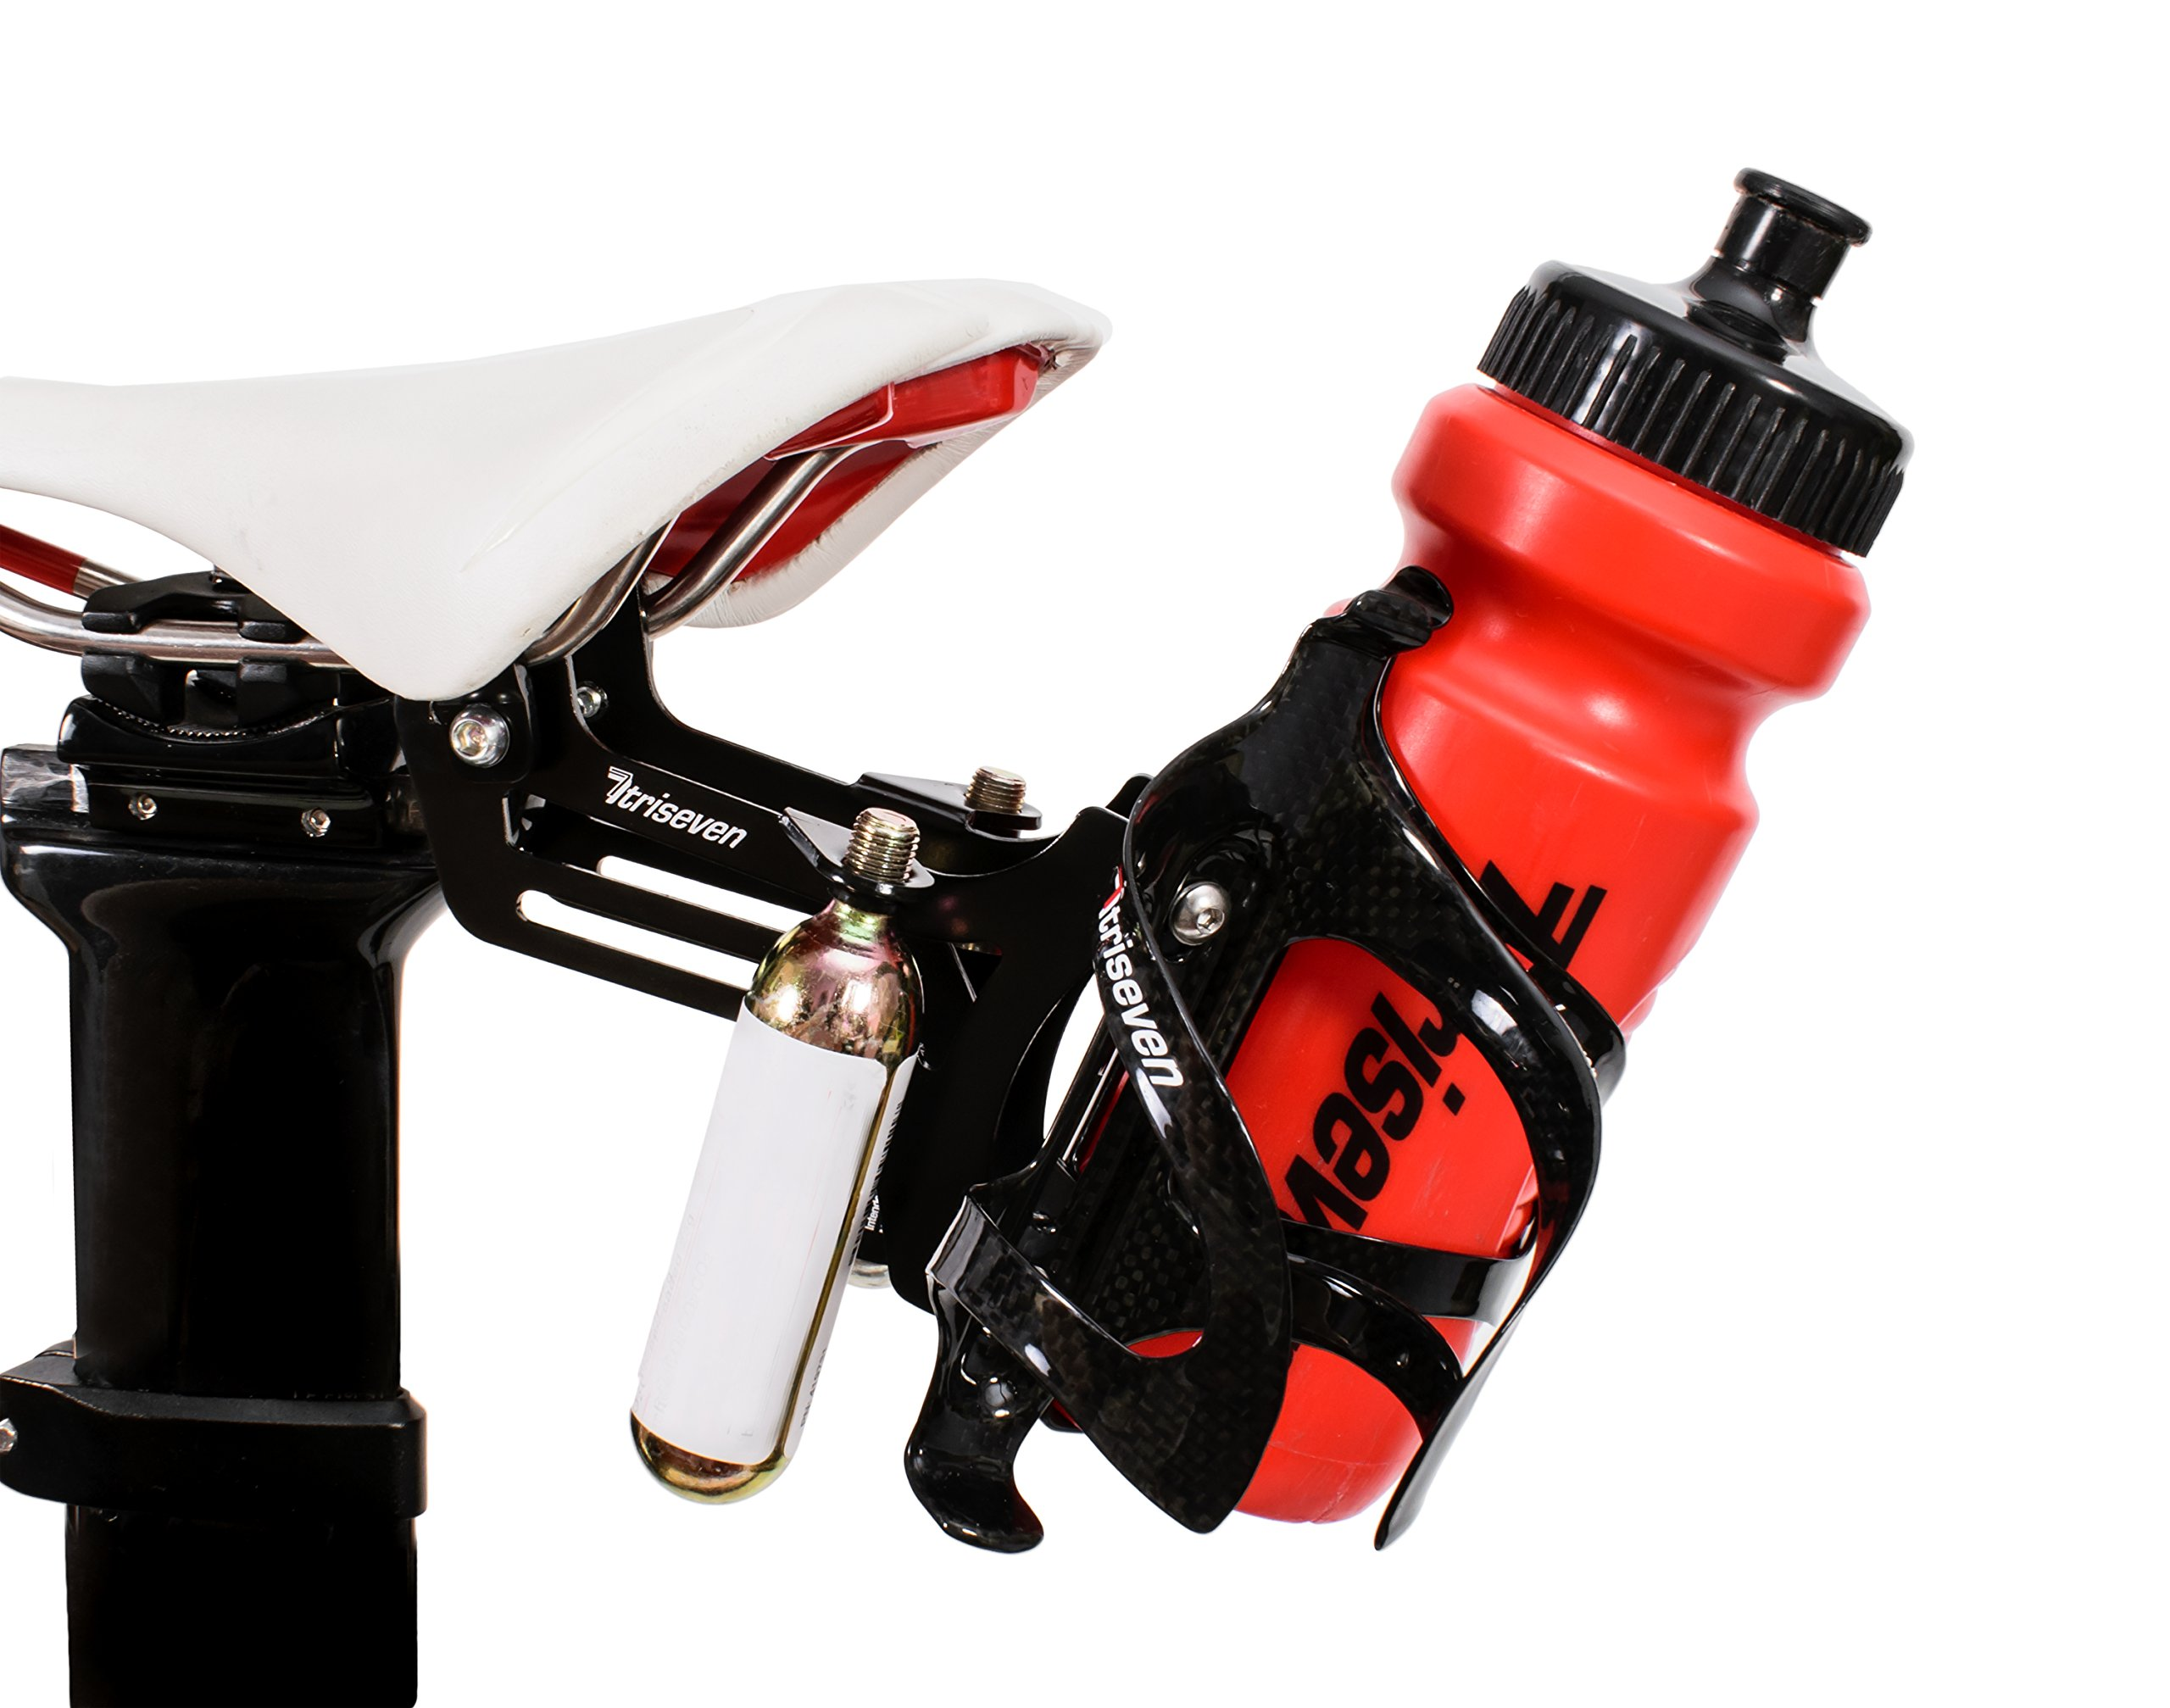 TriSeven Premium Cycling Saddle Cage Holder - Lightweight for Triathlon & MTB, Holds 2 Water Bottles & 2 co2 Cartridges | Does NOT Include Water Cages! by TriSeven (Image #4)